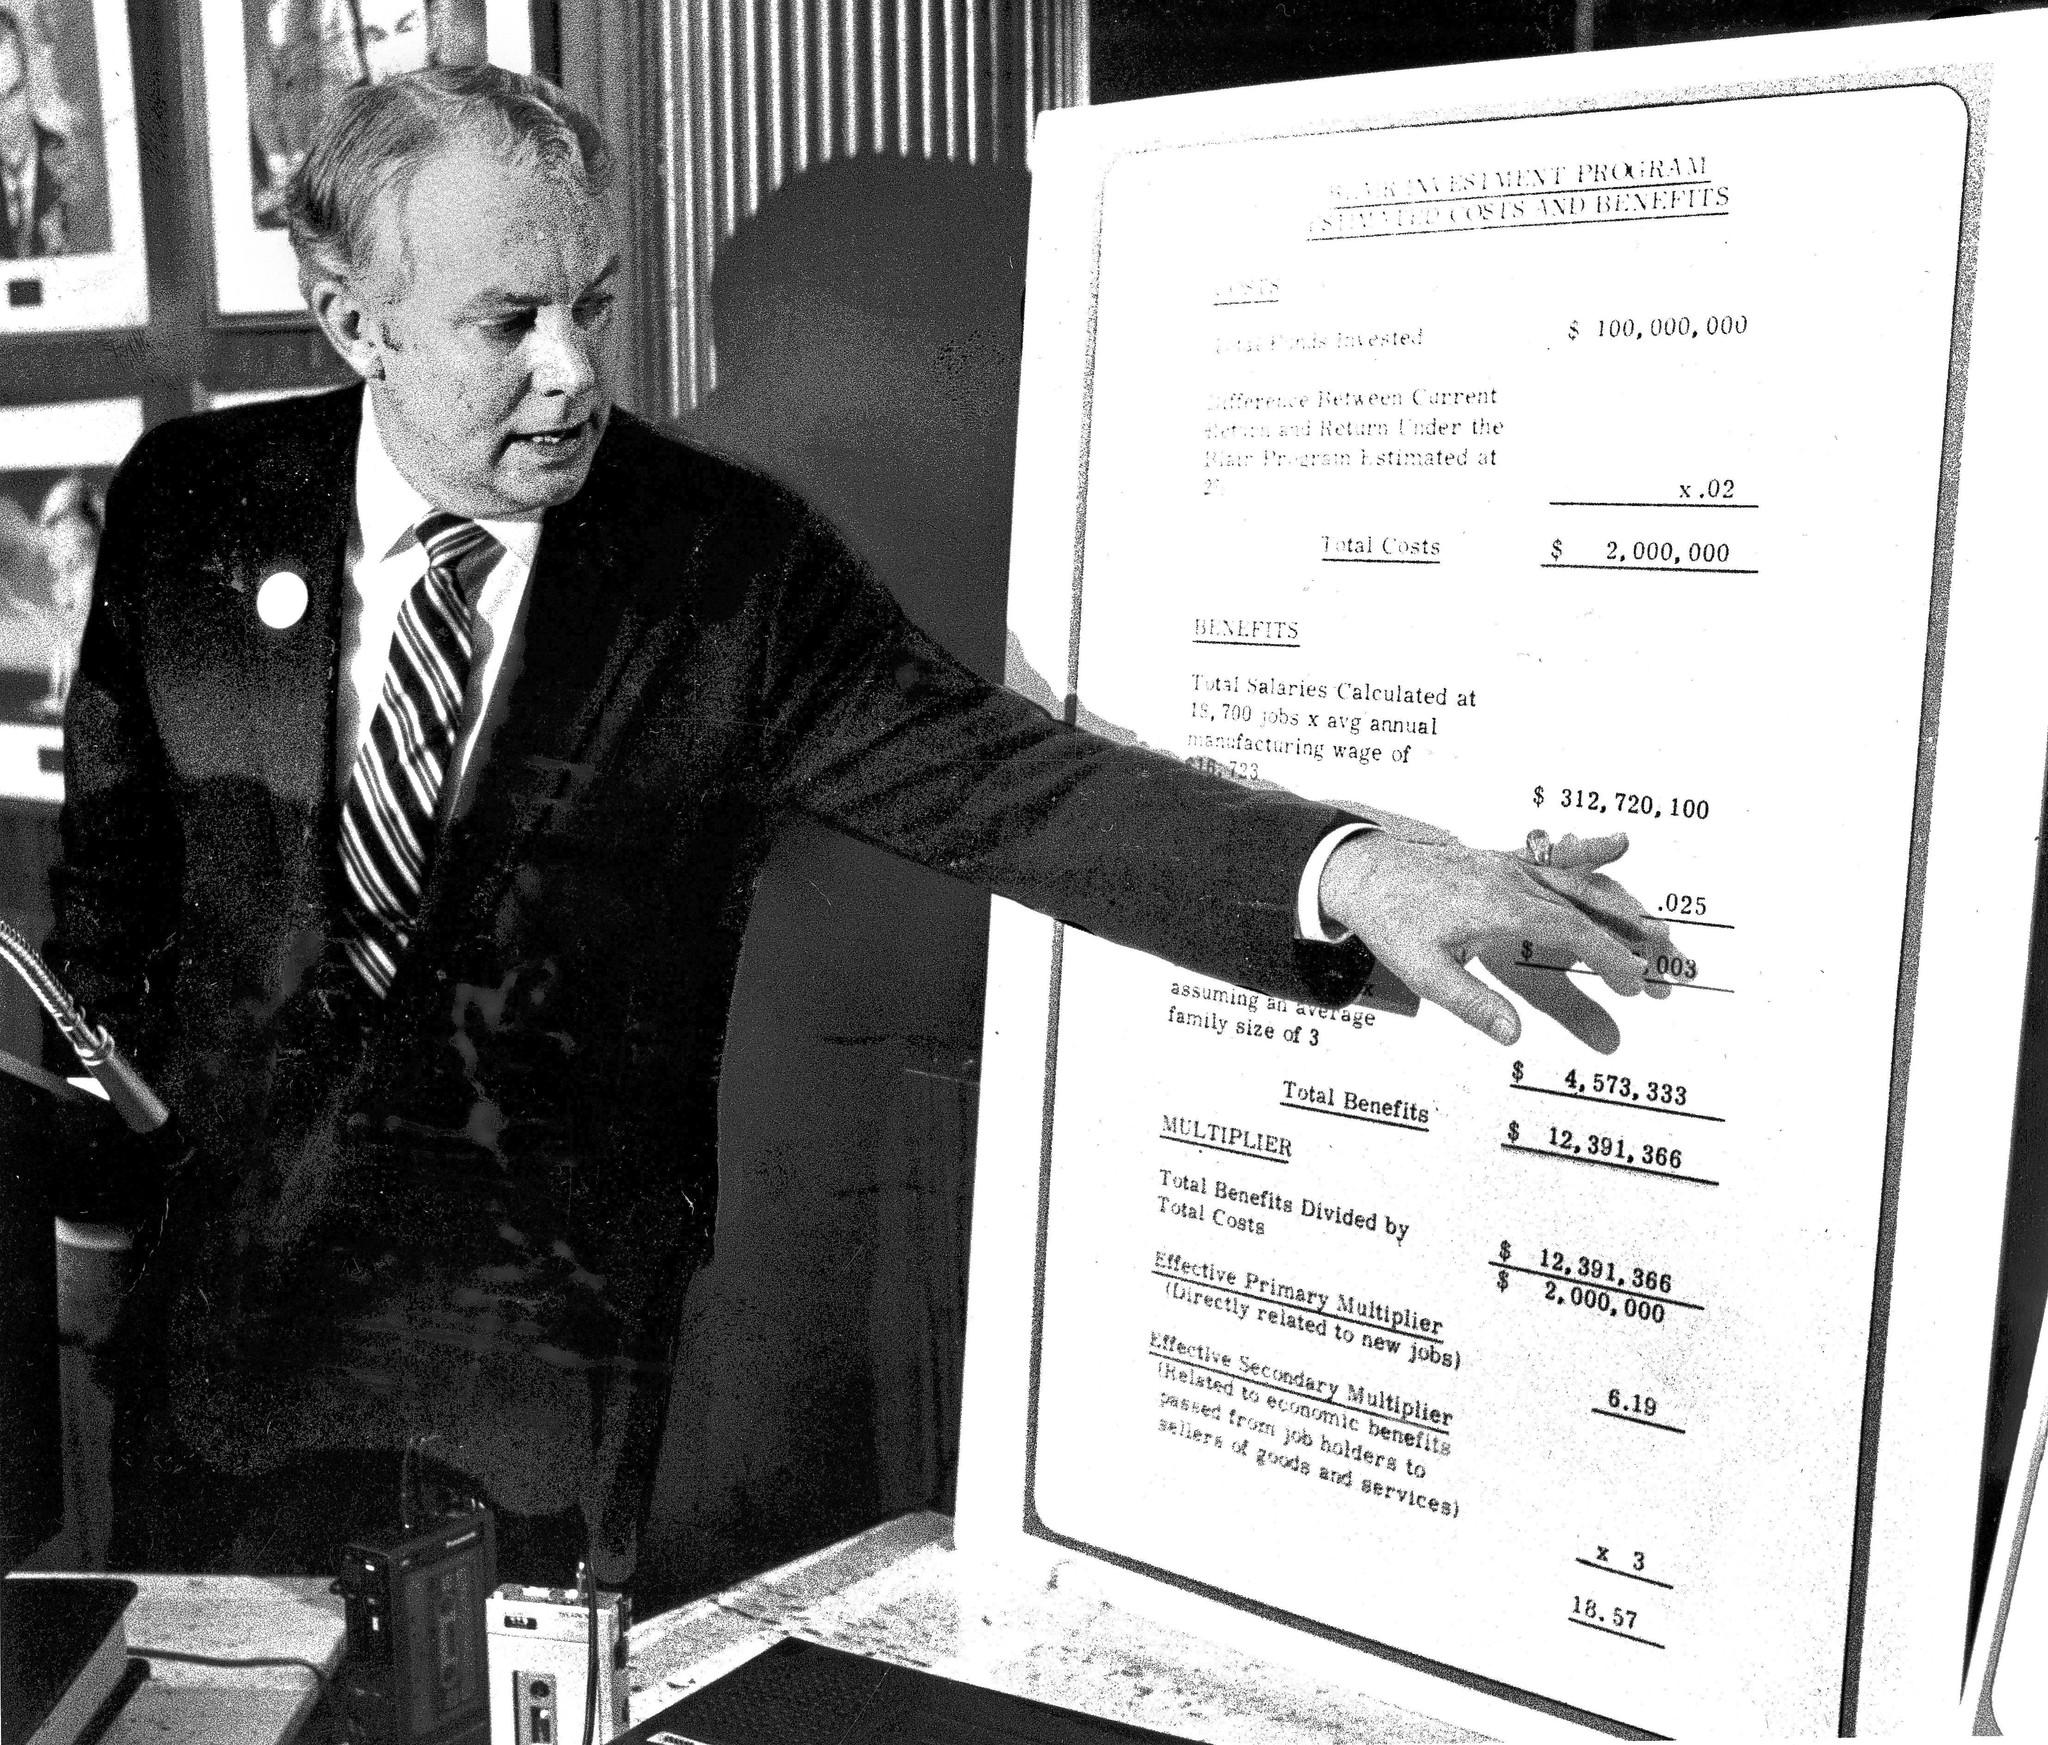 W. Robert Blair II, a former Republican speaker of the Illinois House, campaigns at the Chicago Press Club for state treasurer in 1982.